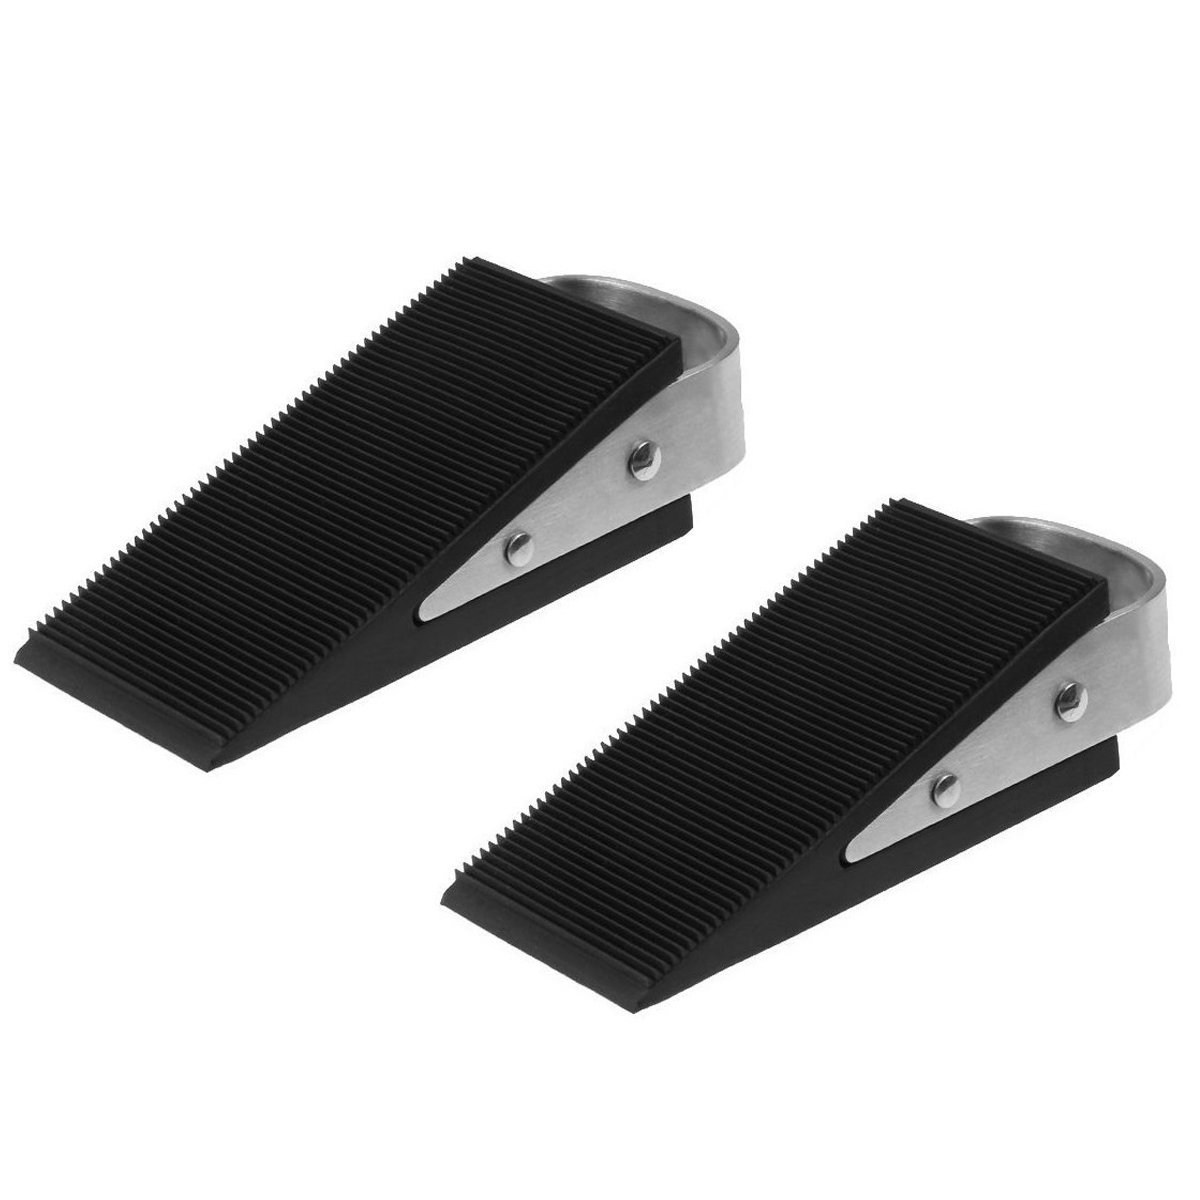 Large Rubber Door Stopper - 2 Pcs Large Heavy Duty Door Stopper Wedge Office Made of Rubber and Stainless Steel - Works on All Surfaces (2 Pack)